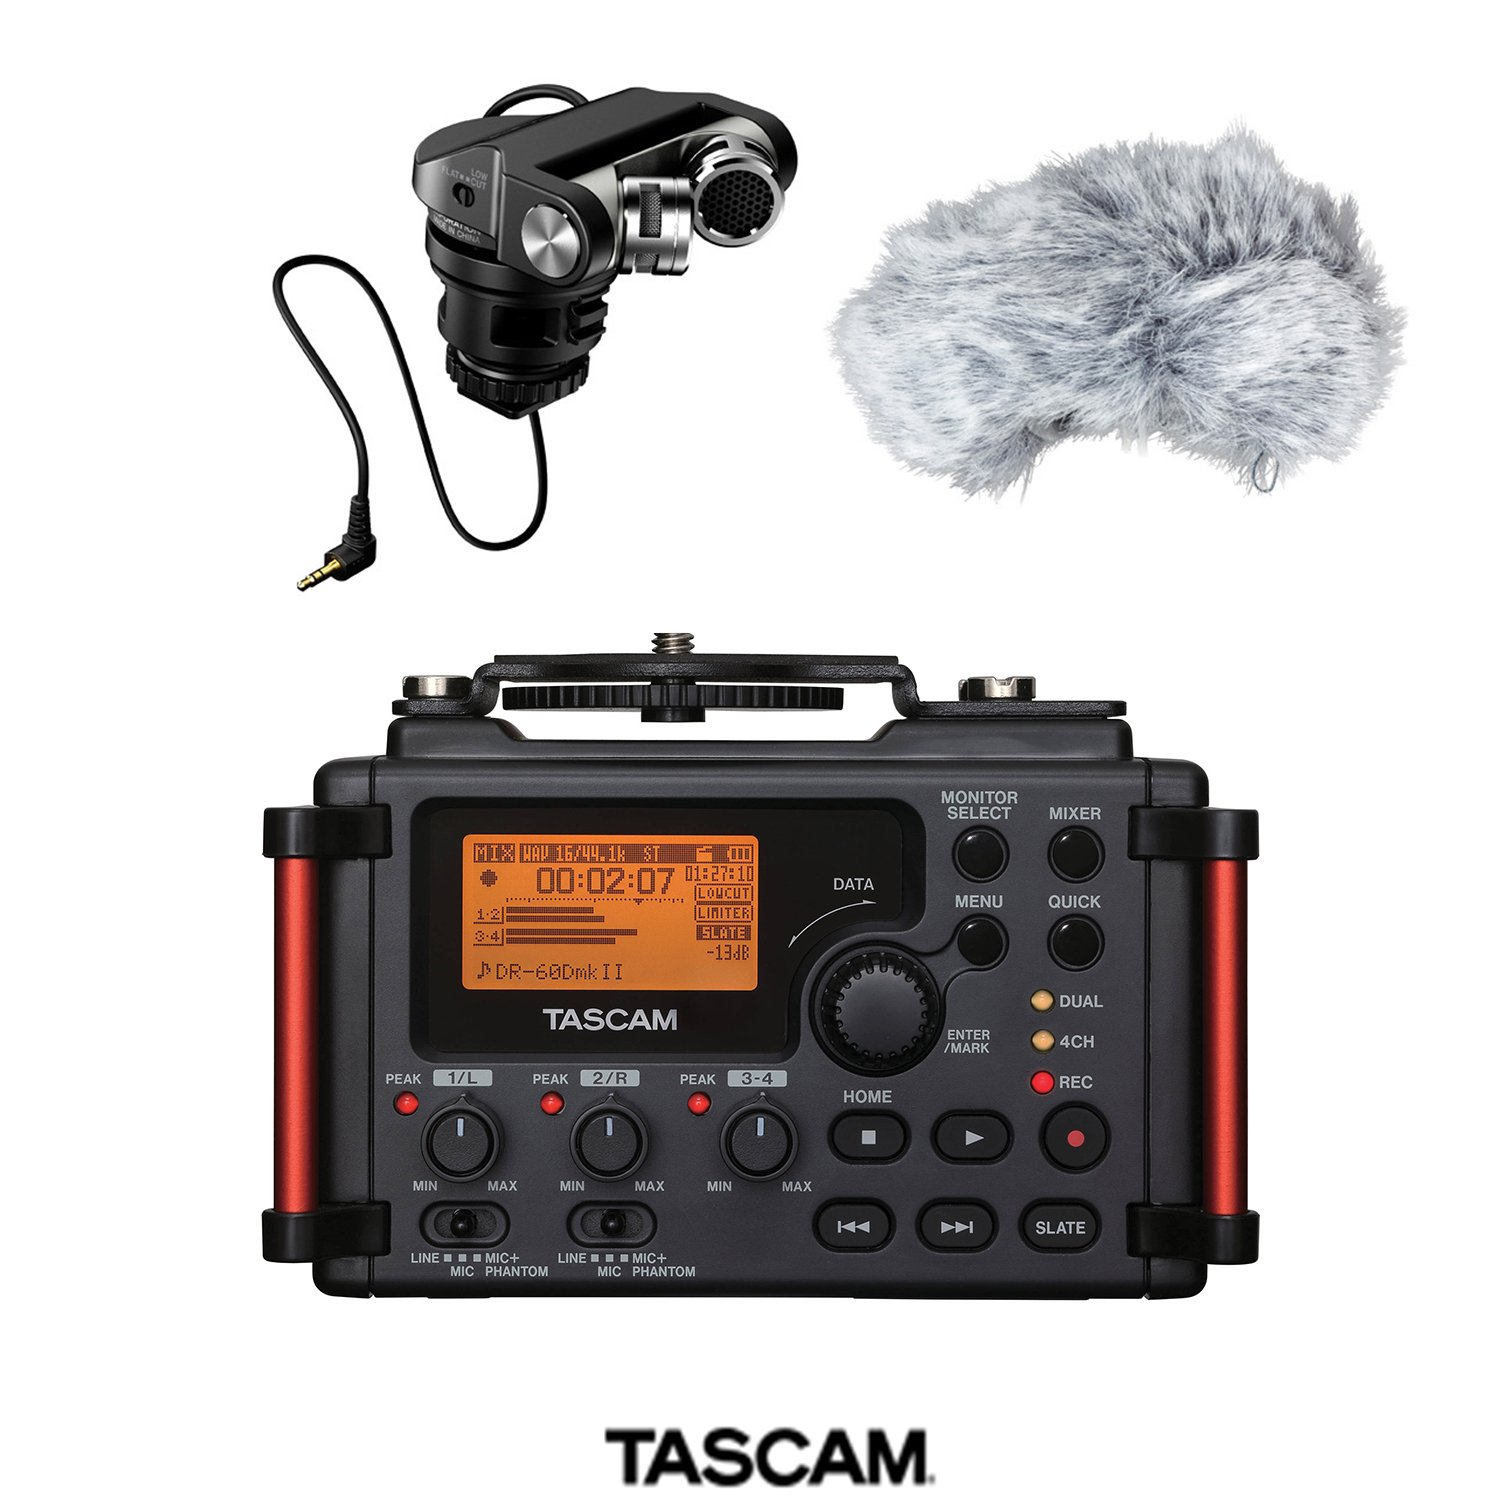 Tascam dr-60dmkii 4チャネルポータブルレコーダーfor DSLR with Tascam tm-2 X – X - YパターンステレオCardioid Mic for DSLR Filmmaking   B01DUMSPMO